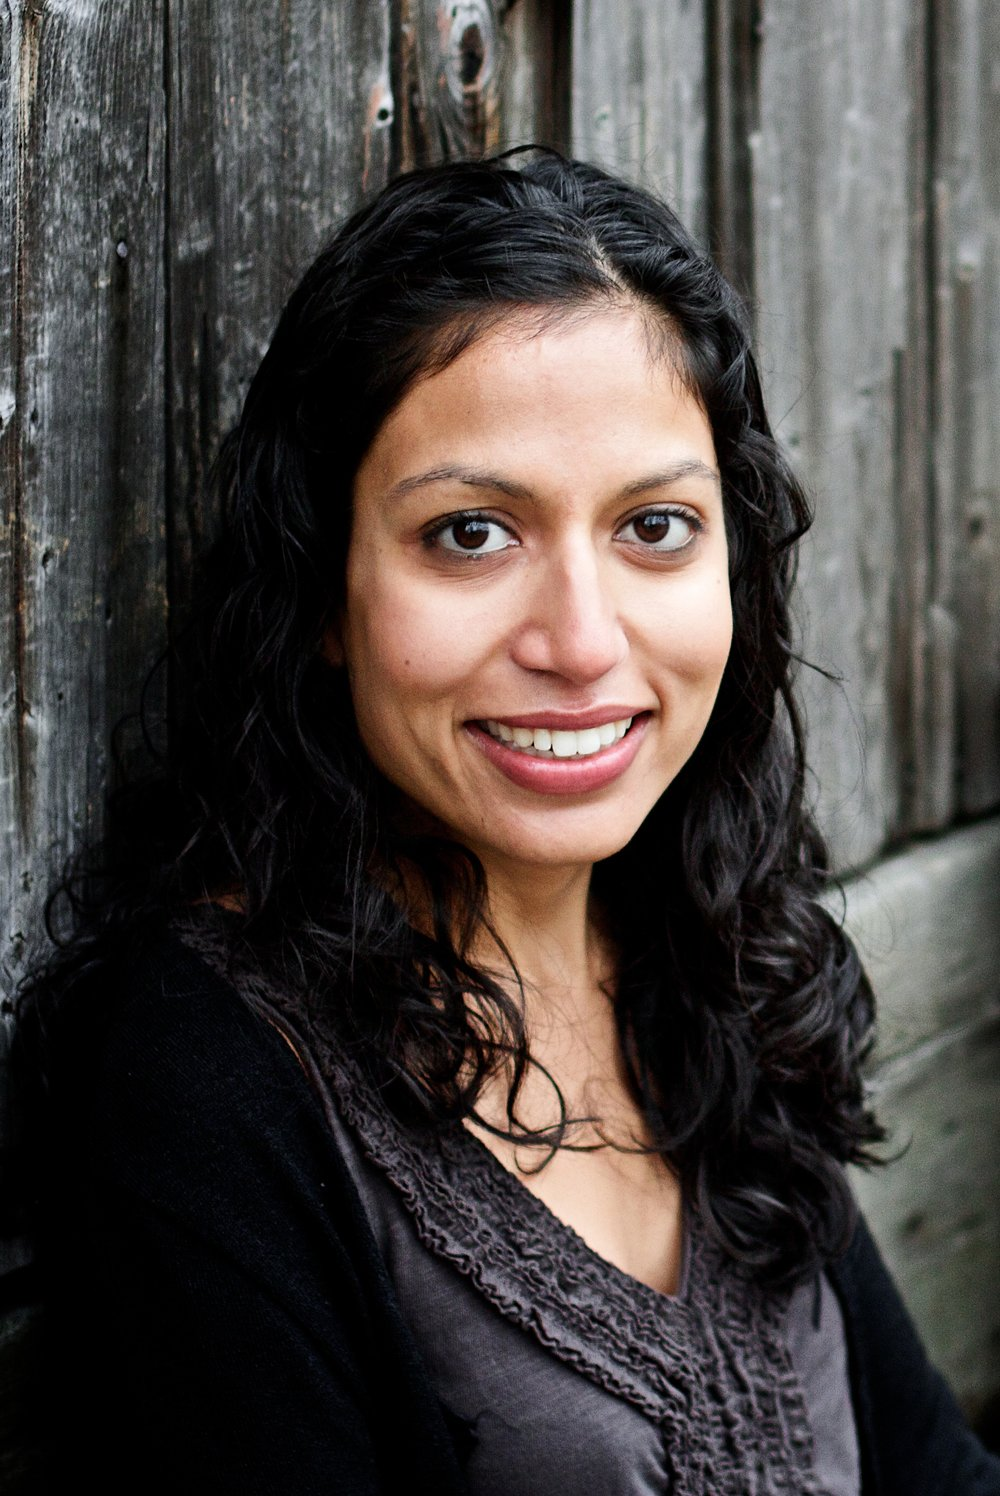 Reshma Patel, Executive Director   Prior to joining Impact Network, Reshma Patel worked at MDRC, a non-profit, non-partisan social policy research firm, dedicated to finding solutions to improve the lives of low-income communities. Prior to MDRC, she was a pension risk analyst at Morgan Stanley, and an actuarial associate at Towers Perrin. Reshma has a Bachelor of Math from the University of Waterloo and she is a Fellow of the Society of Actuaries. Learn more about Reshma's  Speaking Engagements .